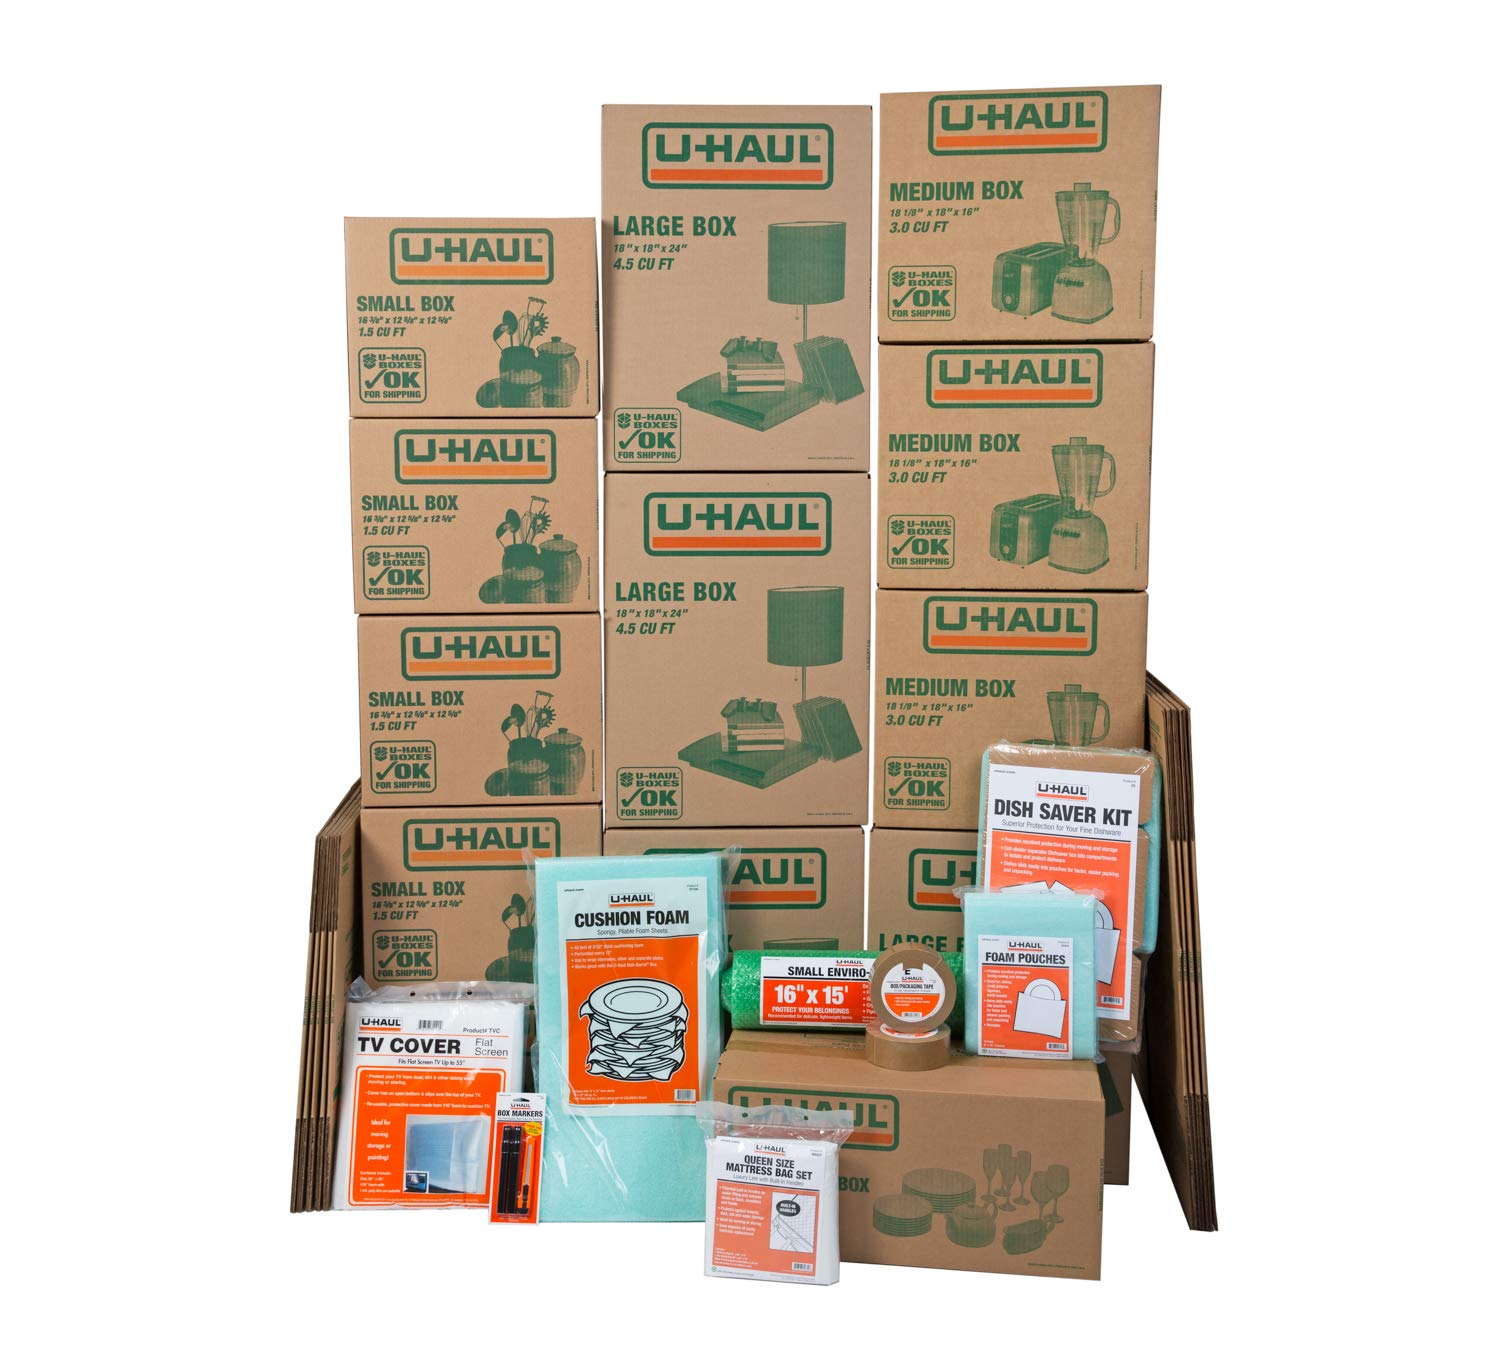 U-Haul Apartment Moving Kit - 21 Boxes, Tape, Mattress Bag, TV Cover, Assorted Packing Supplies